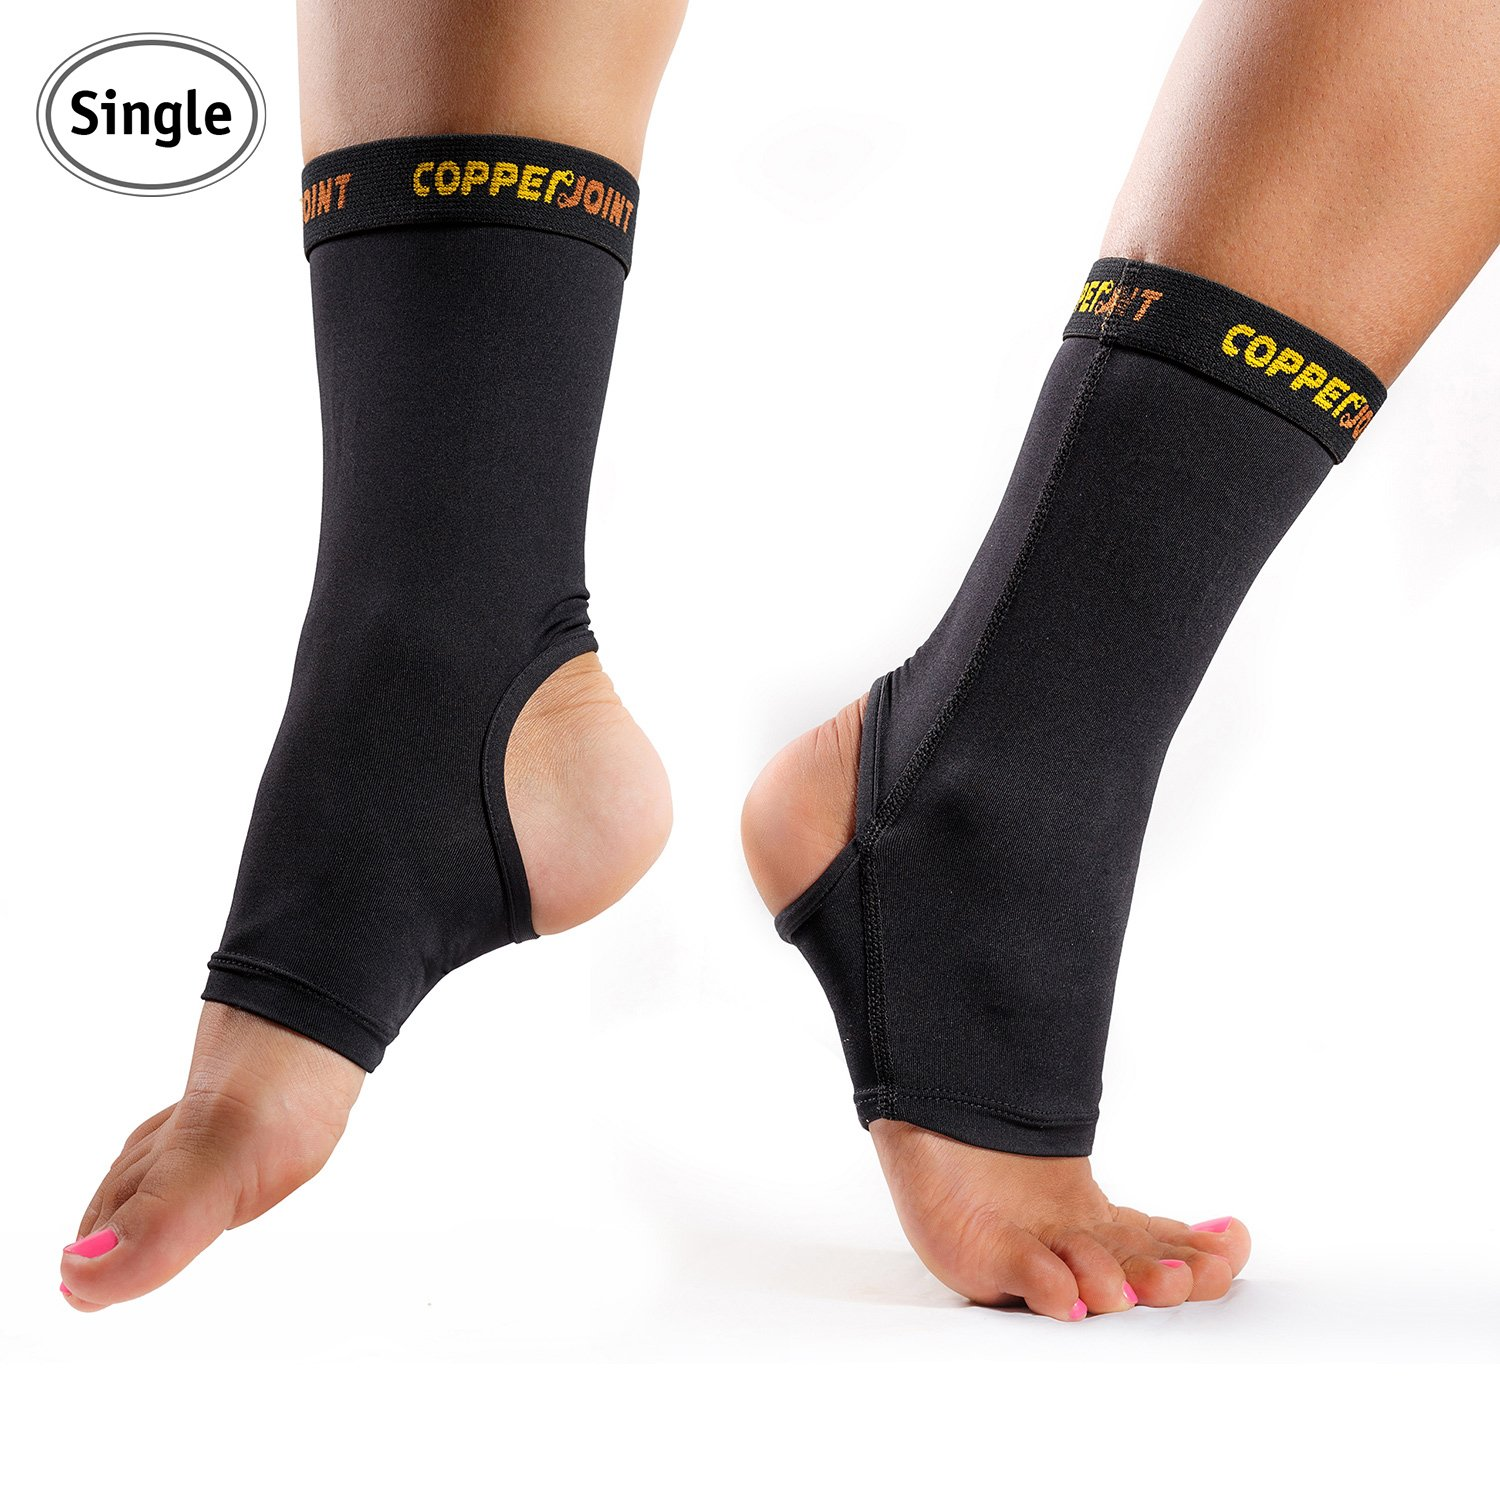 CopperJoint Copper-Infused Compression Ankle Sleeve, High-Performance, Breathable Design Provides Comfortable and Durable Joint Support for All Lifestyles, Single Sleeve